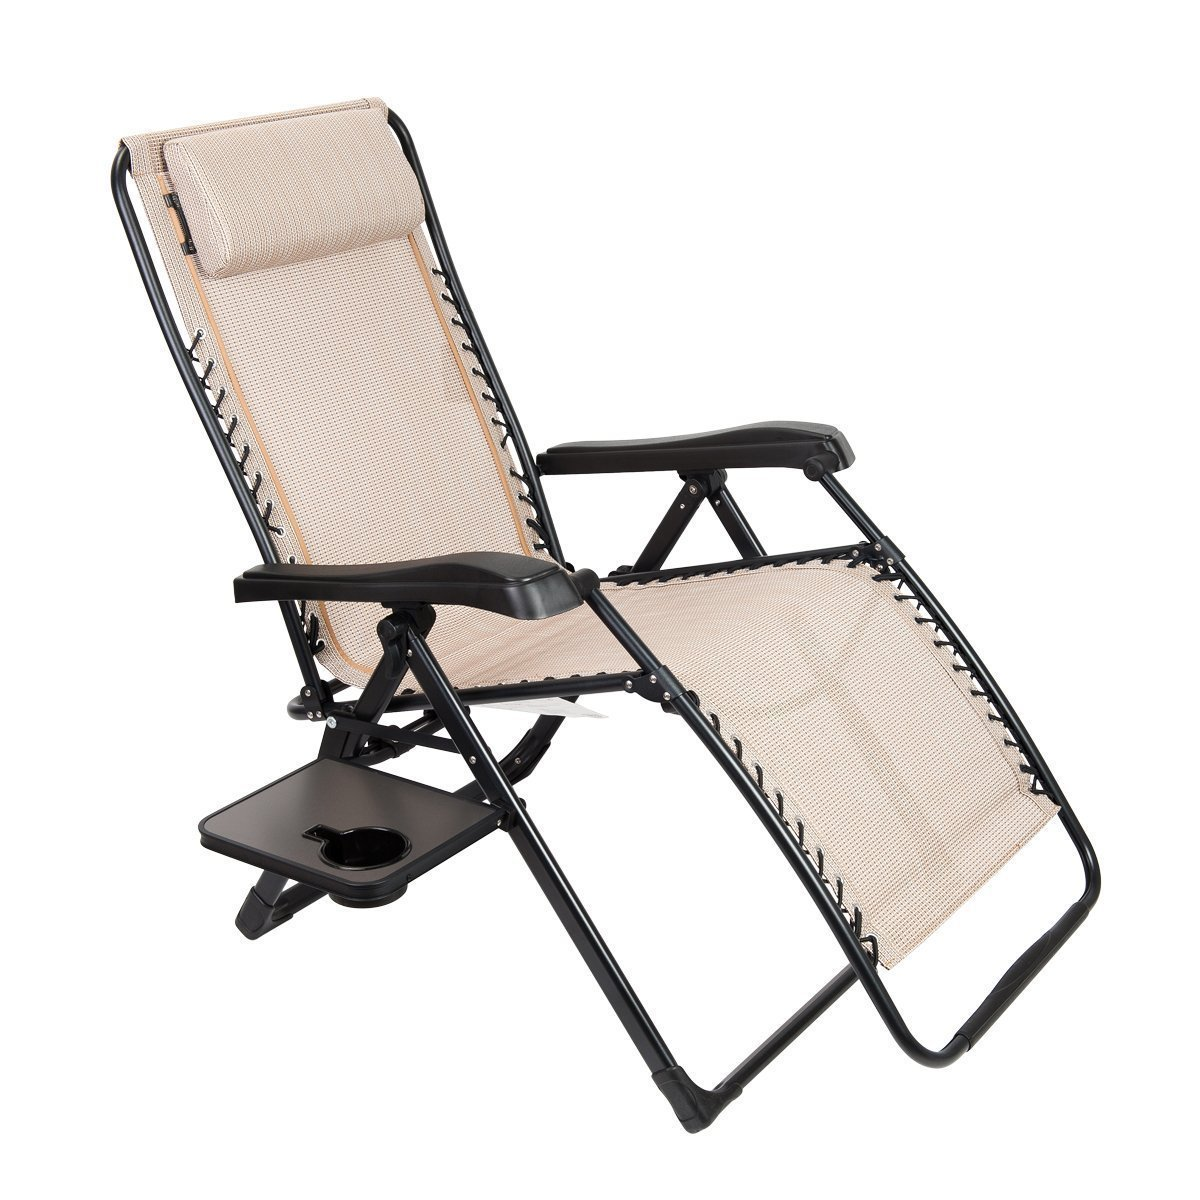 Timber Ridge Oversized XL Zero Gravity Adjustable Recliner Patio Lounge Chair with Side Table Supports 350lbs by Timber Ridge